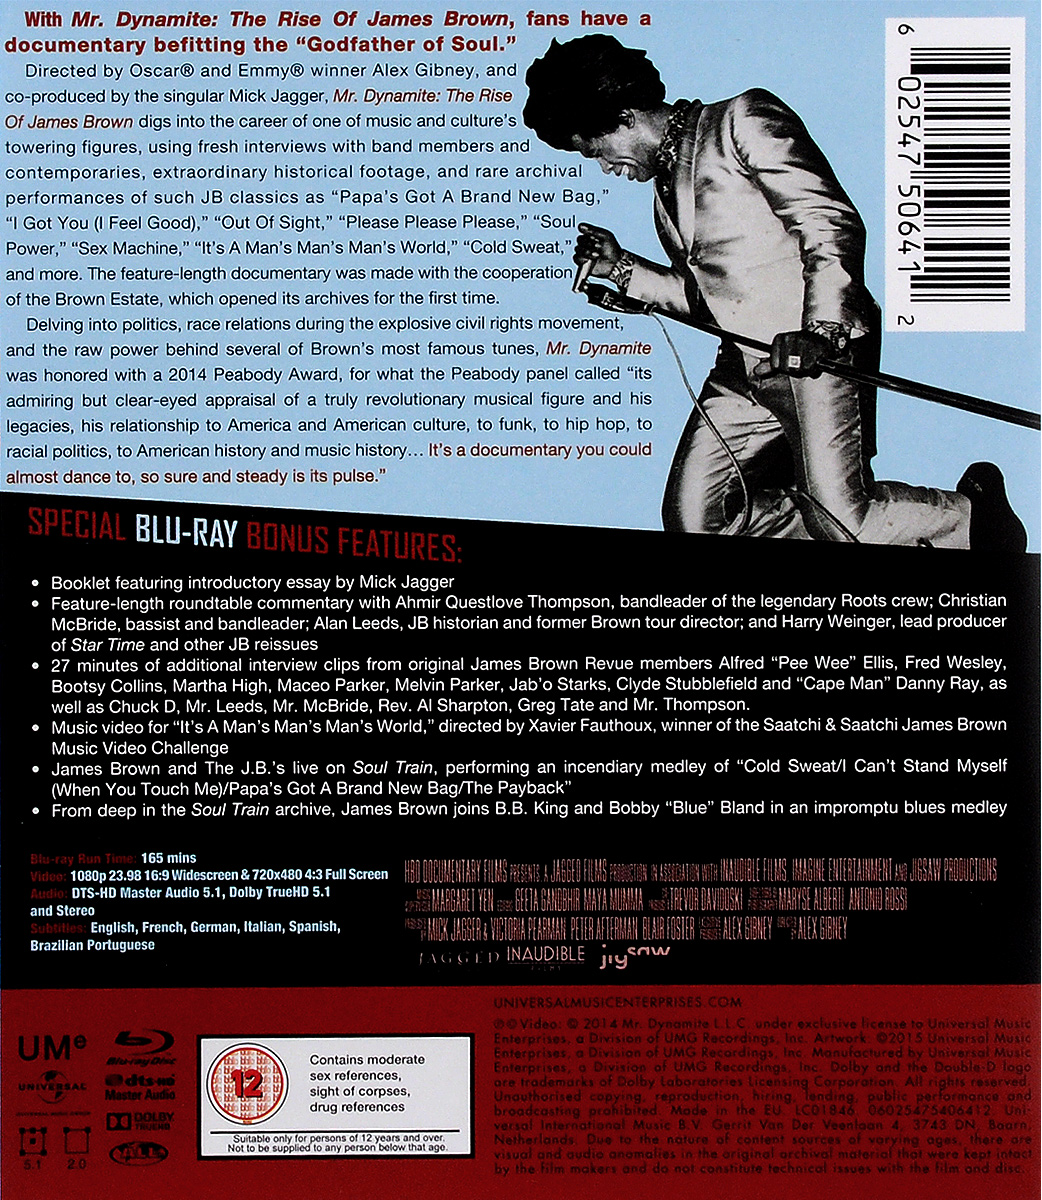 Mr.  Dynamite:  The Rise Of James Brown (Blu-ray) HBO Documentary Films